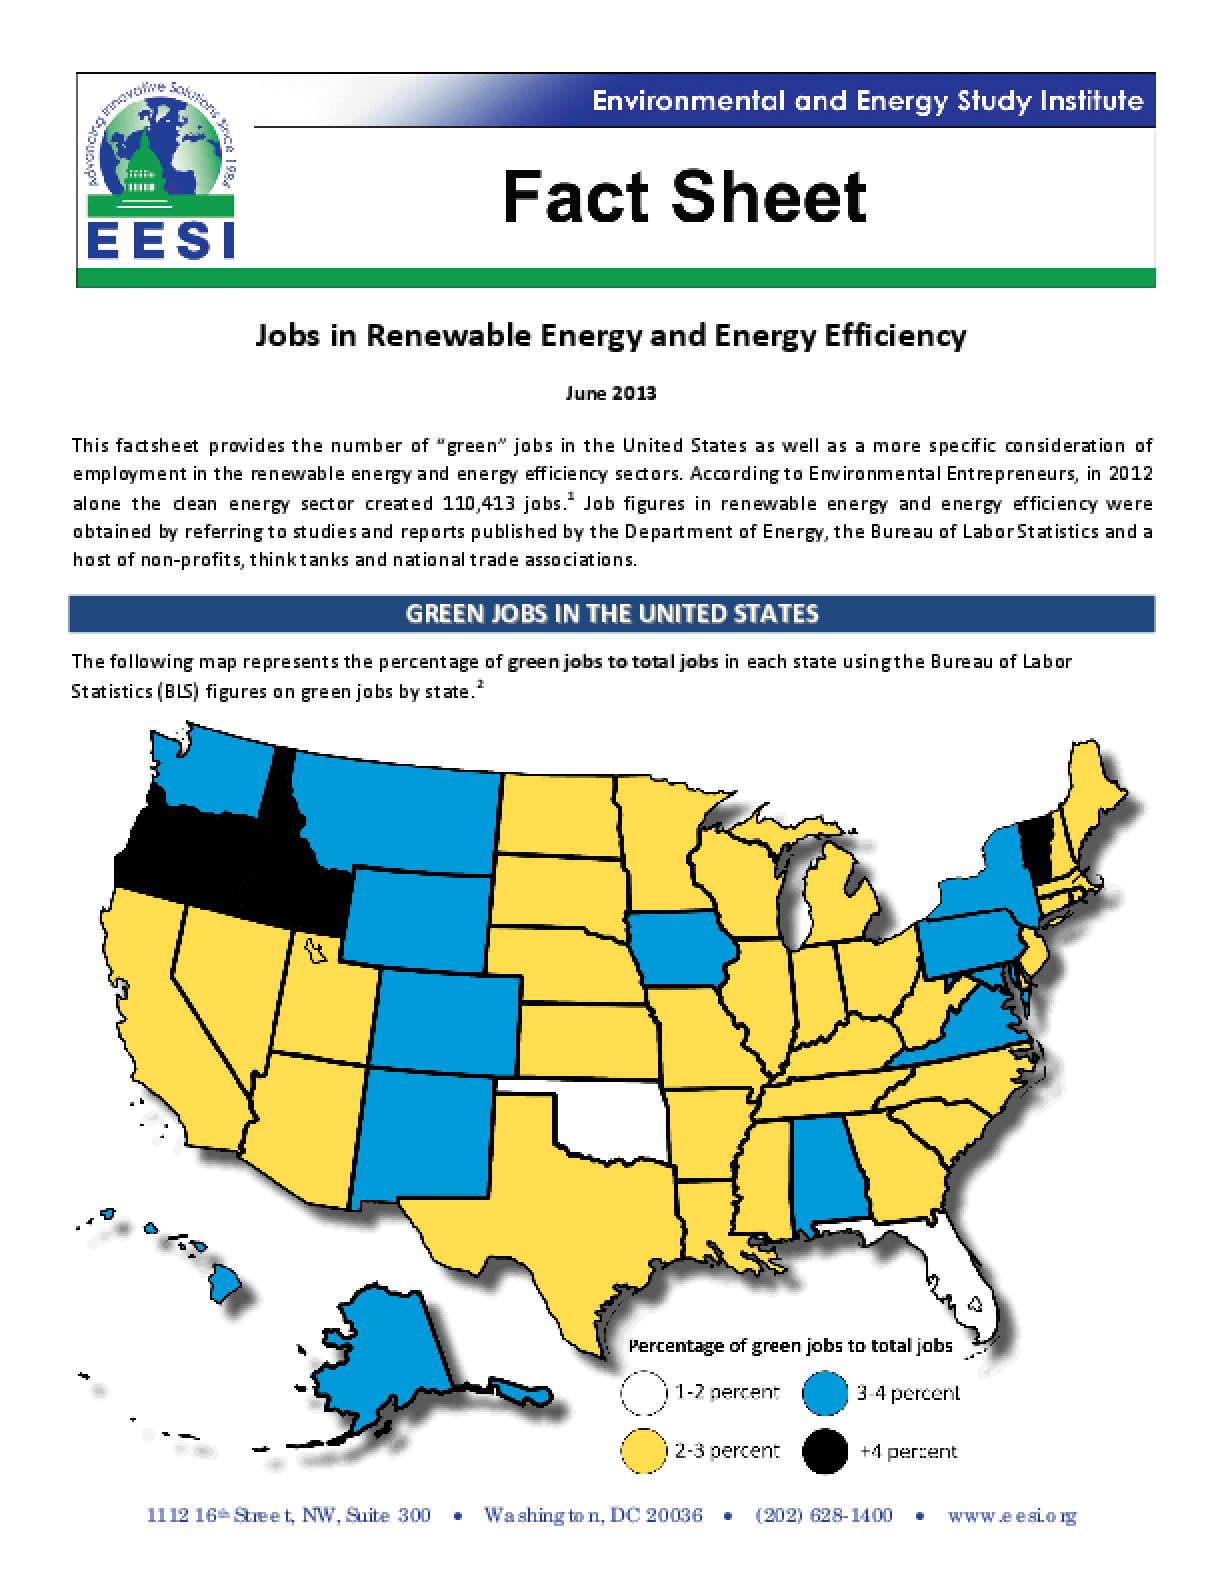 Fact Sheet: Jobs in Renewable Energy and Energy Efficiency